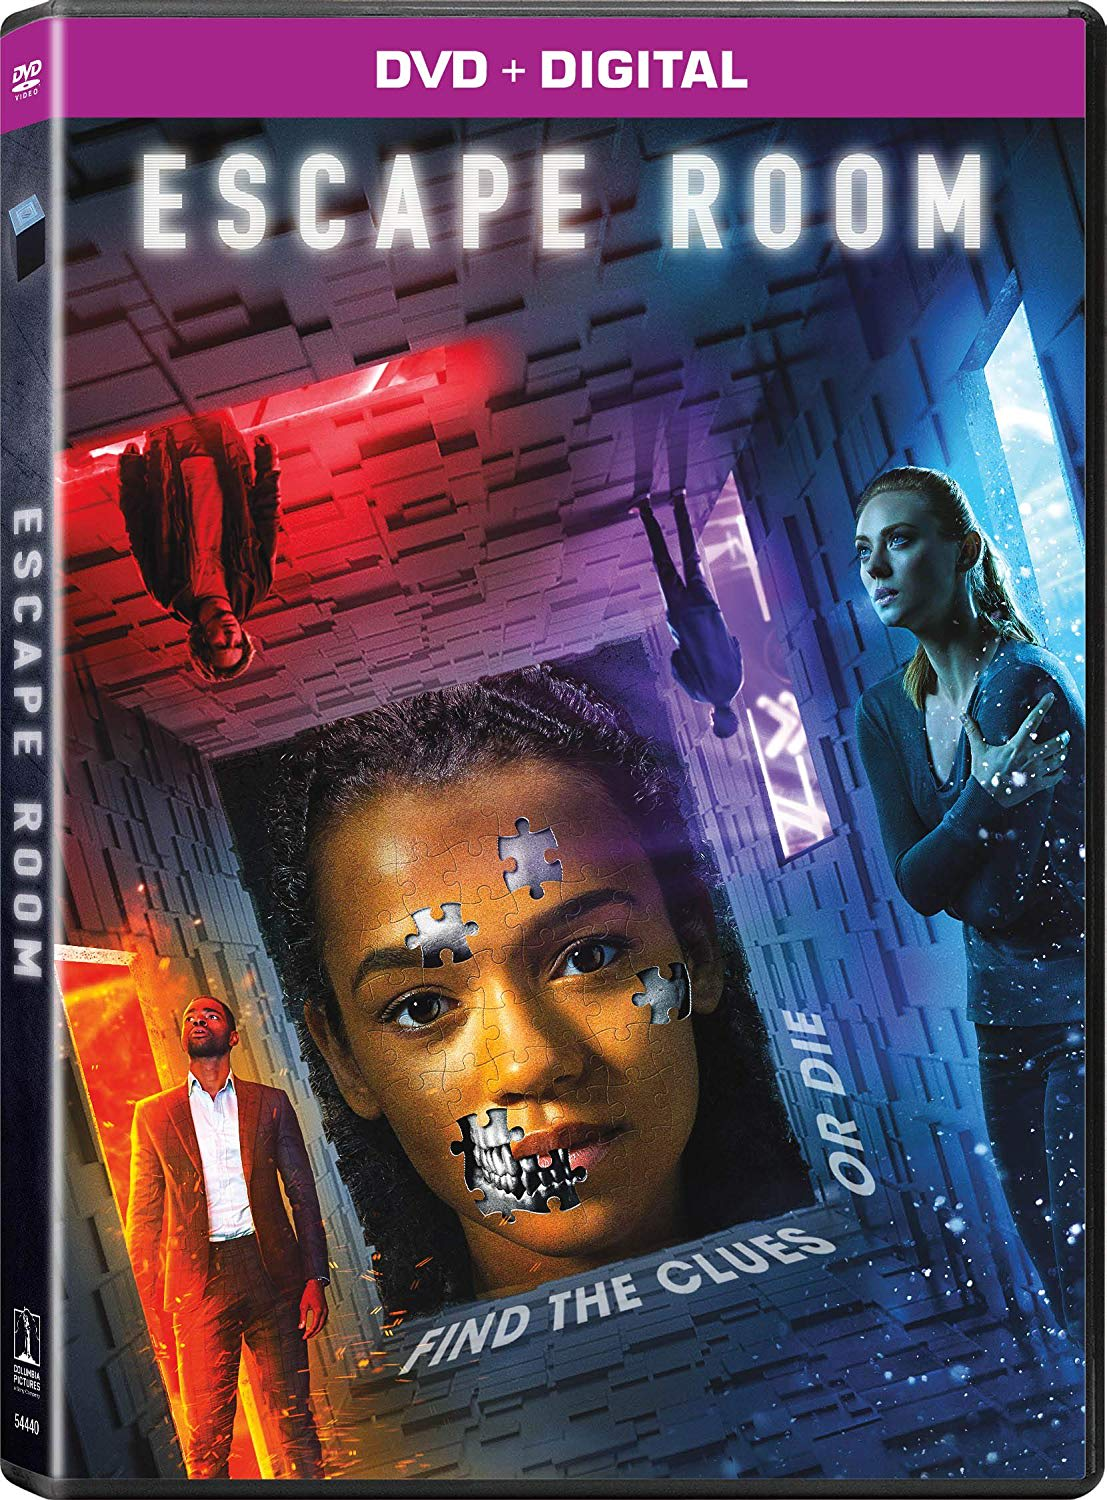 Escape Room (Digital) [DVD]